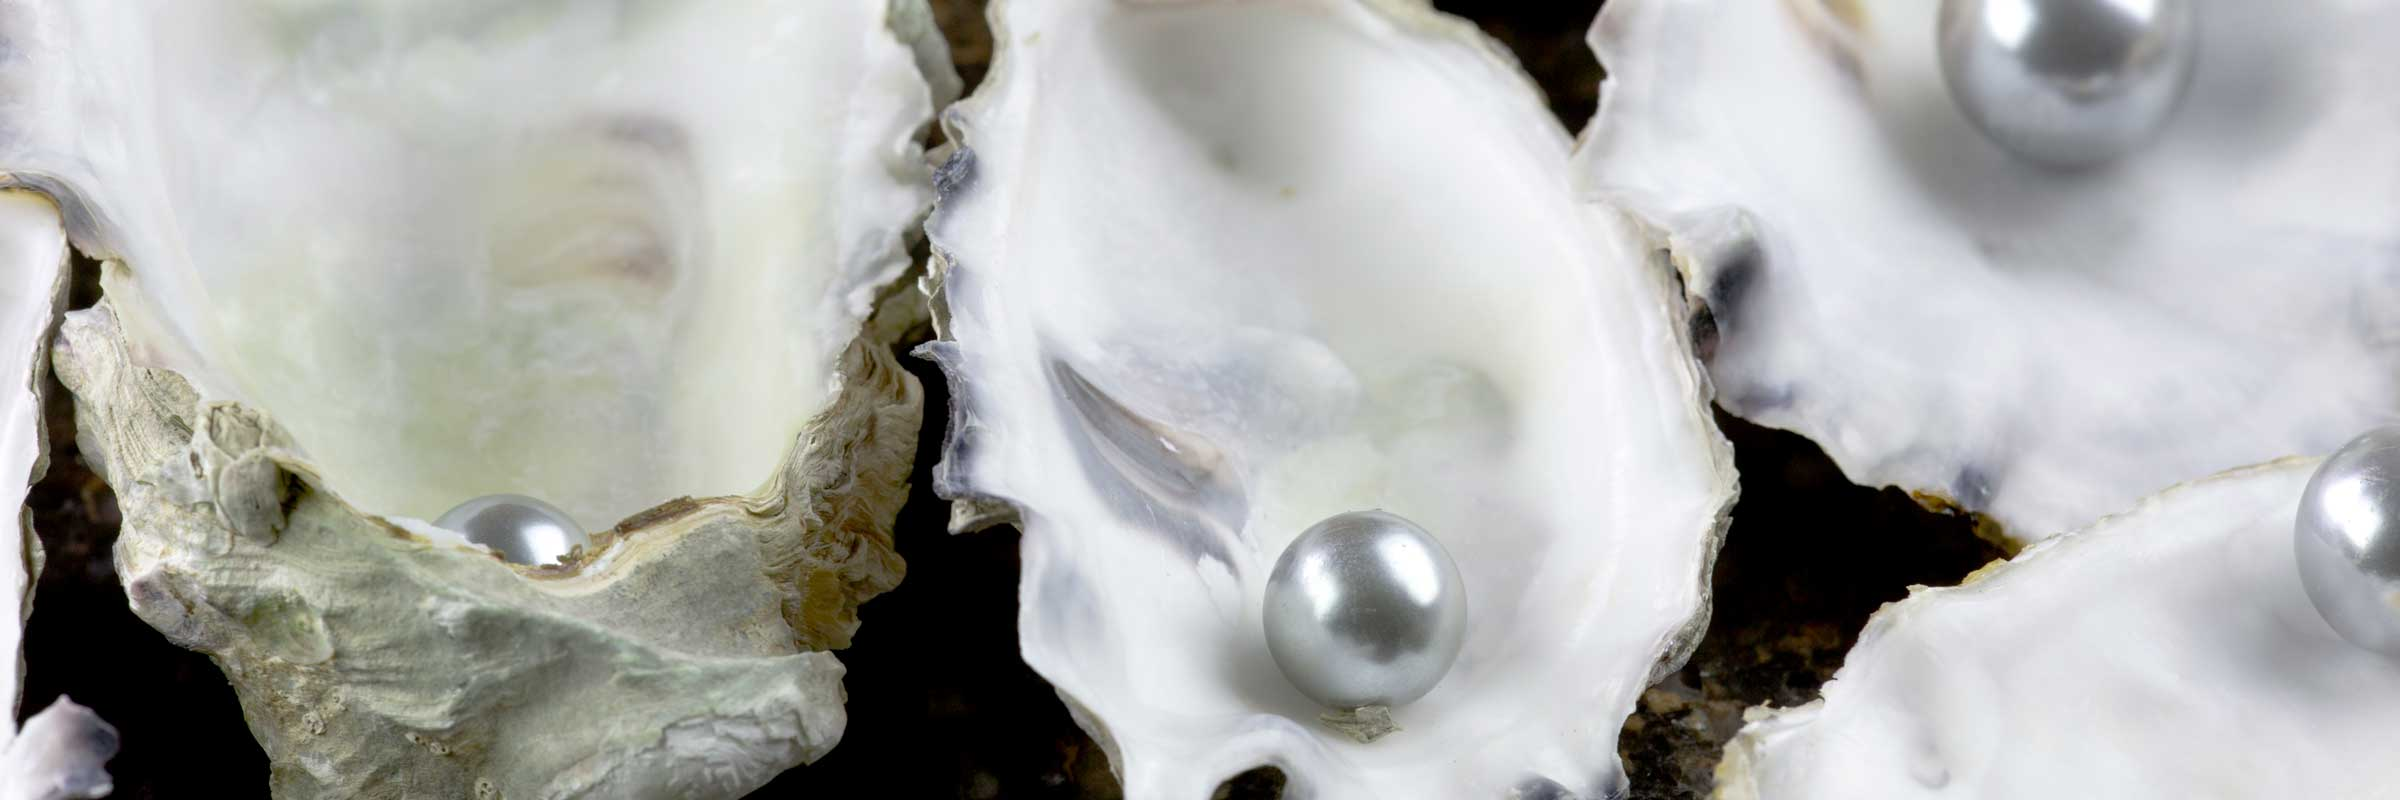 oyster-pearl-03